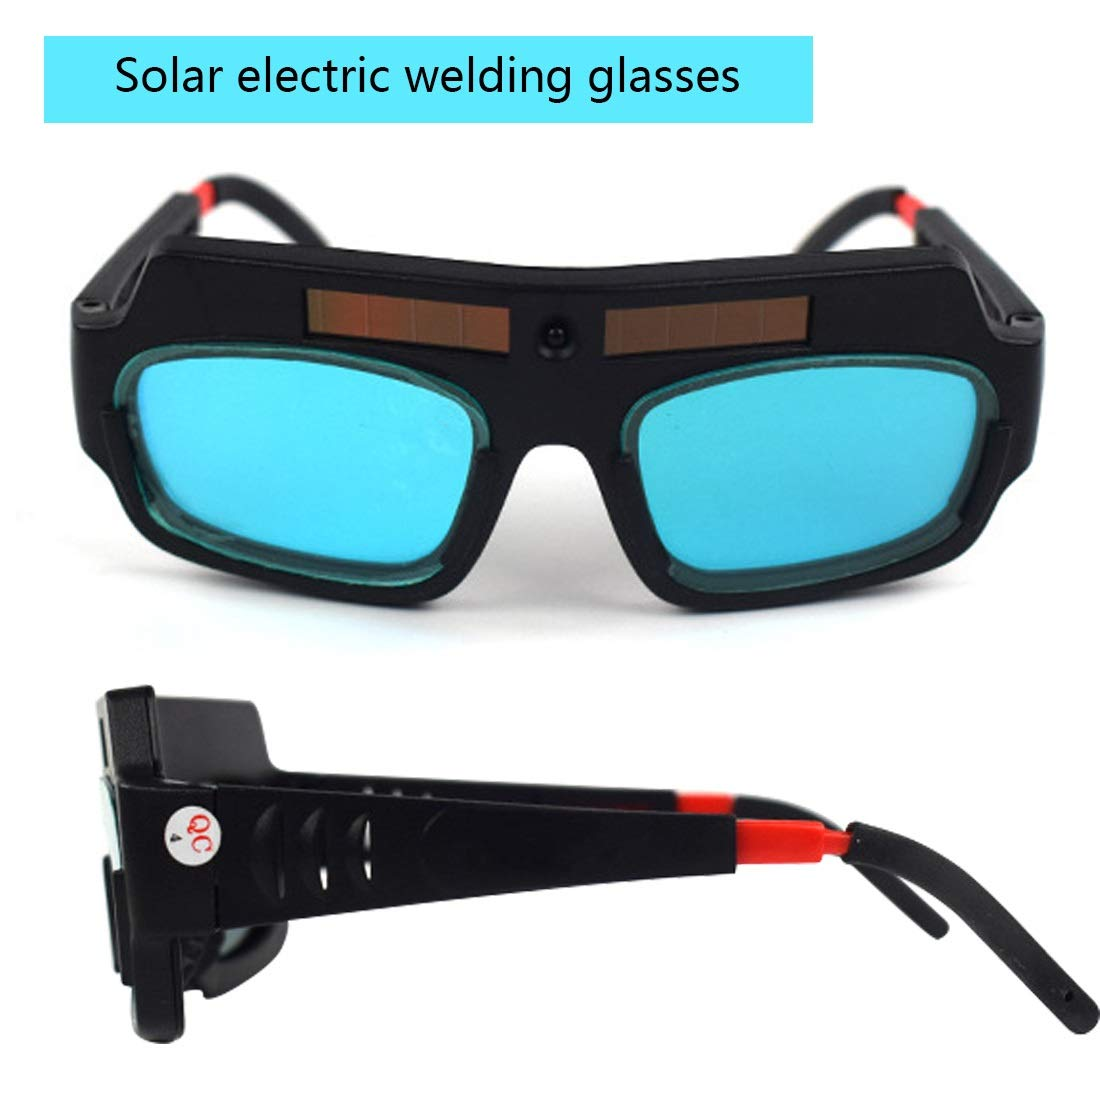 YUANYUAN521 Solar Powered Auto Darkening Welding Mask Helmet Goggle Welder Glasses Arc Lens Great Goggles for Welding Protection by YUANYUAN521